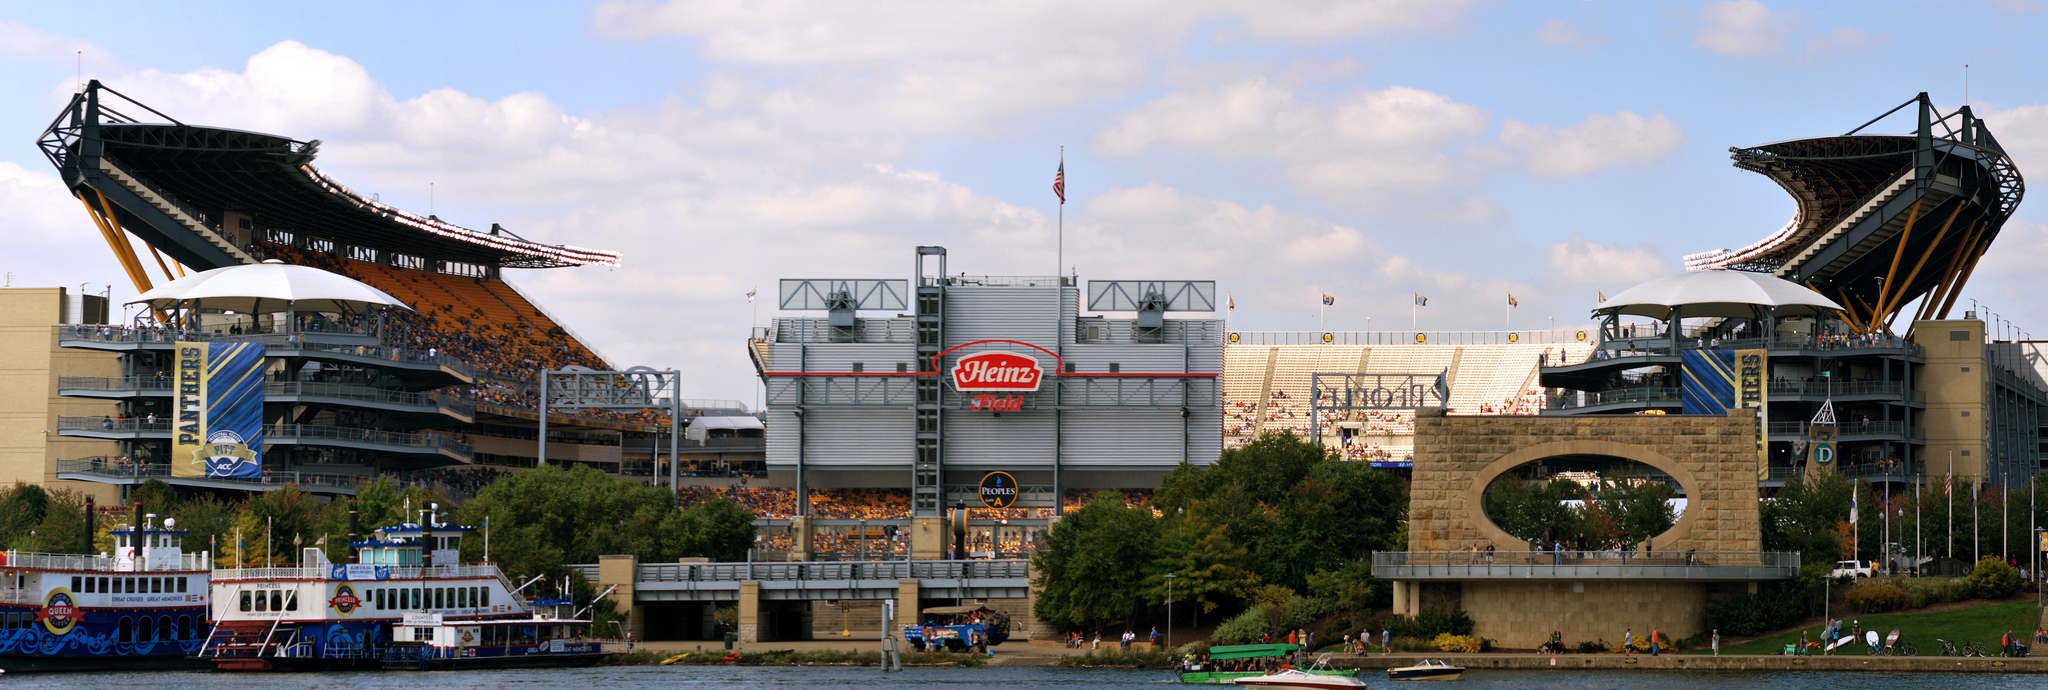 Heinz Field Parking Lots